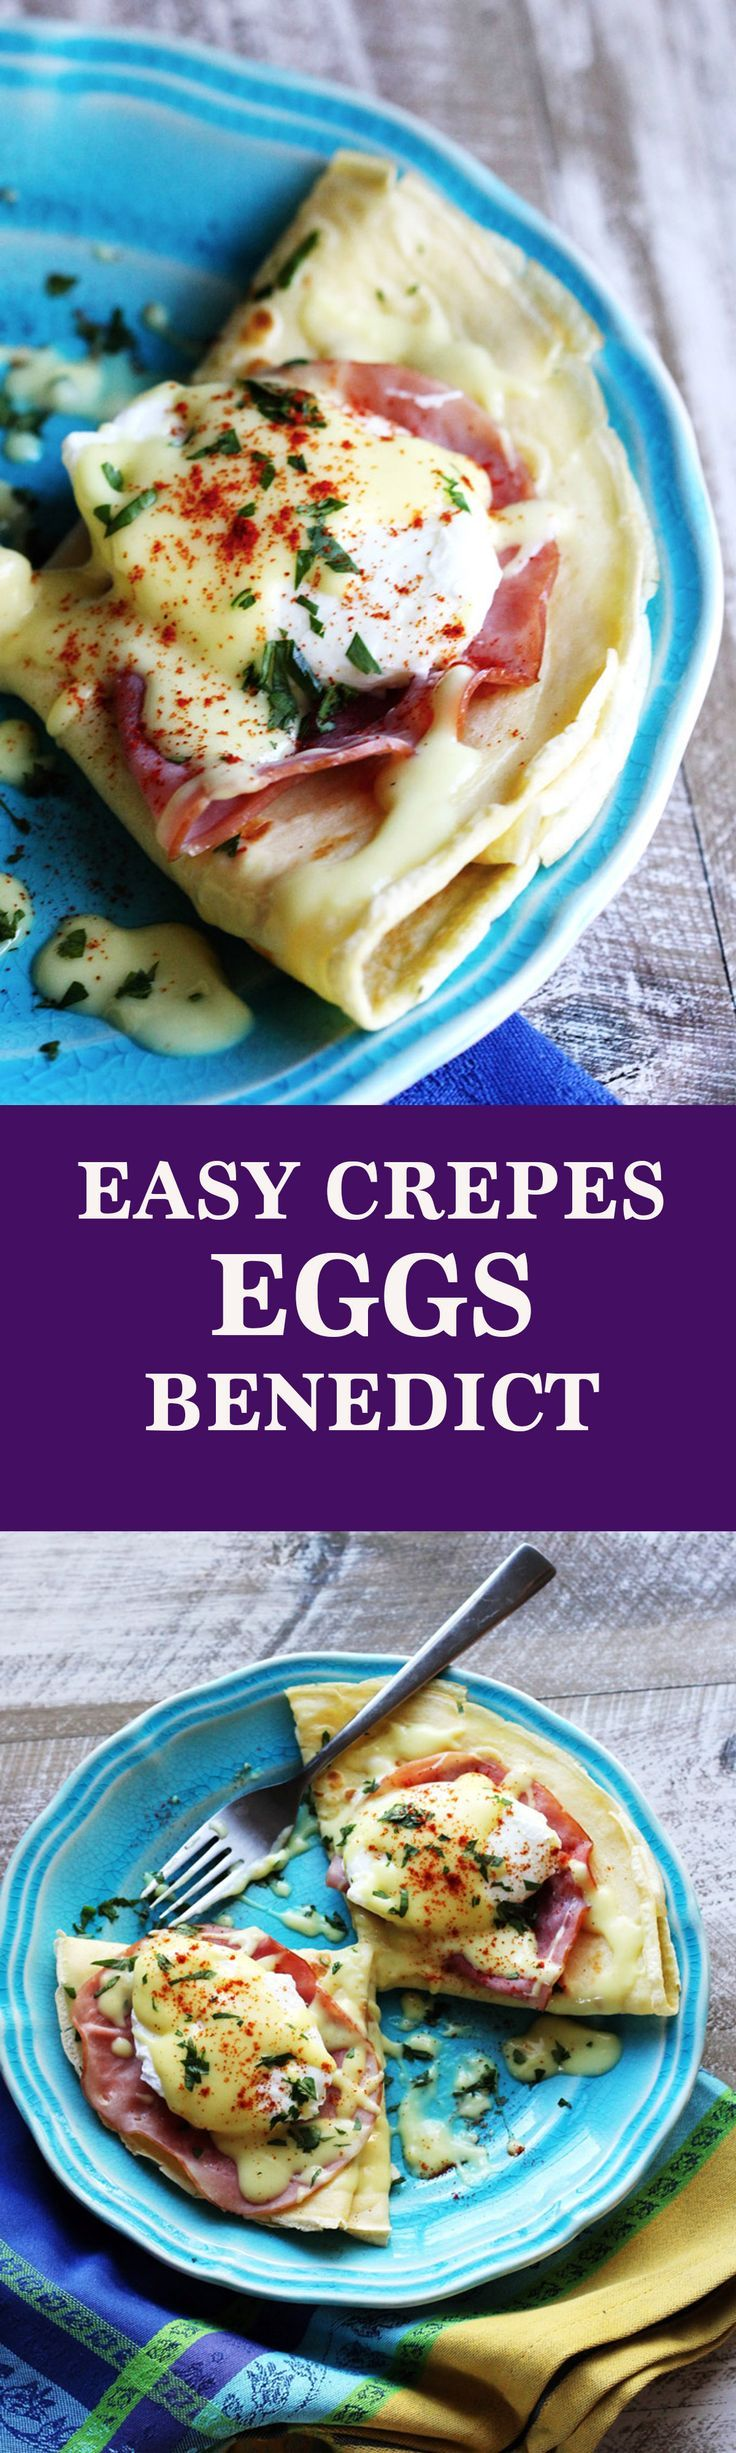 Easy Crepes Eggs Benedict - Amazing twist on THE classic American breakfast. Next time you feel like Eggs Benedict, try to pair them with classic French crepes and make these easy crepes eggs Benedict. We couldn't get enough.